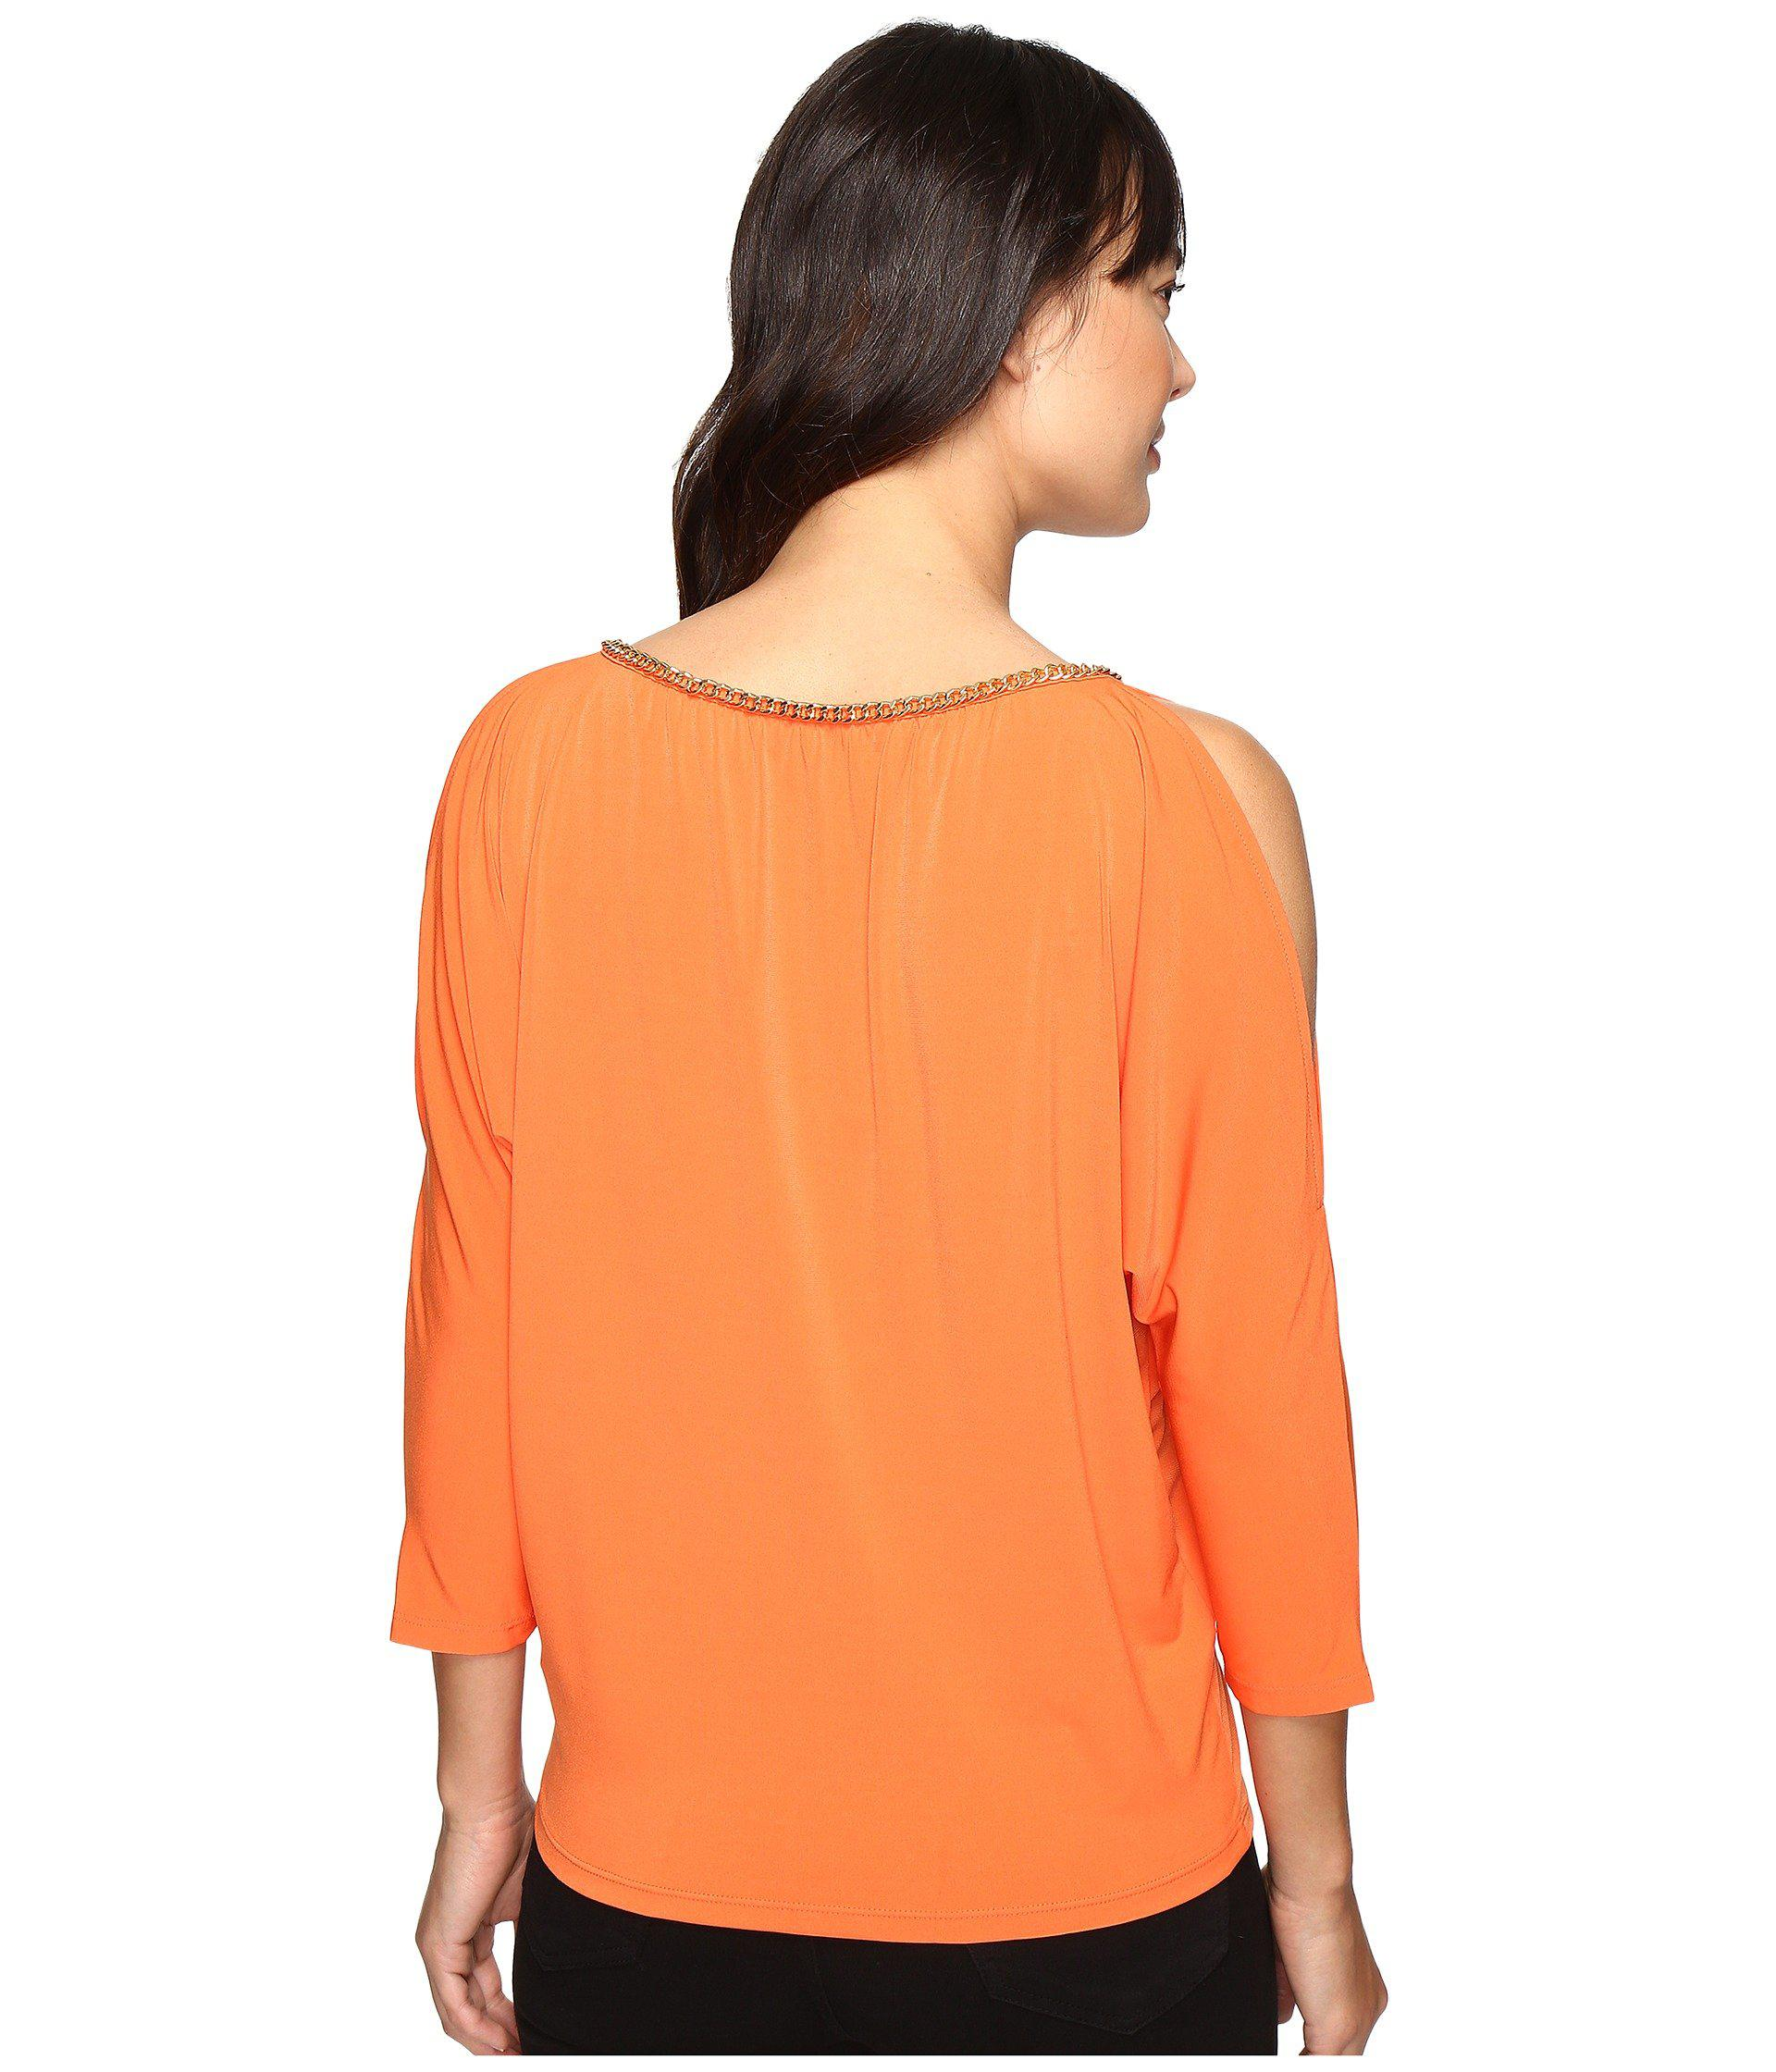 deeed169b00e1 ... purchase lyst michael michael kors chain neck cold shoulder top in  orange c610d 5ef26 ...